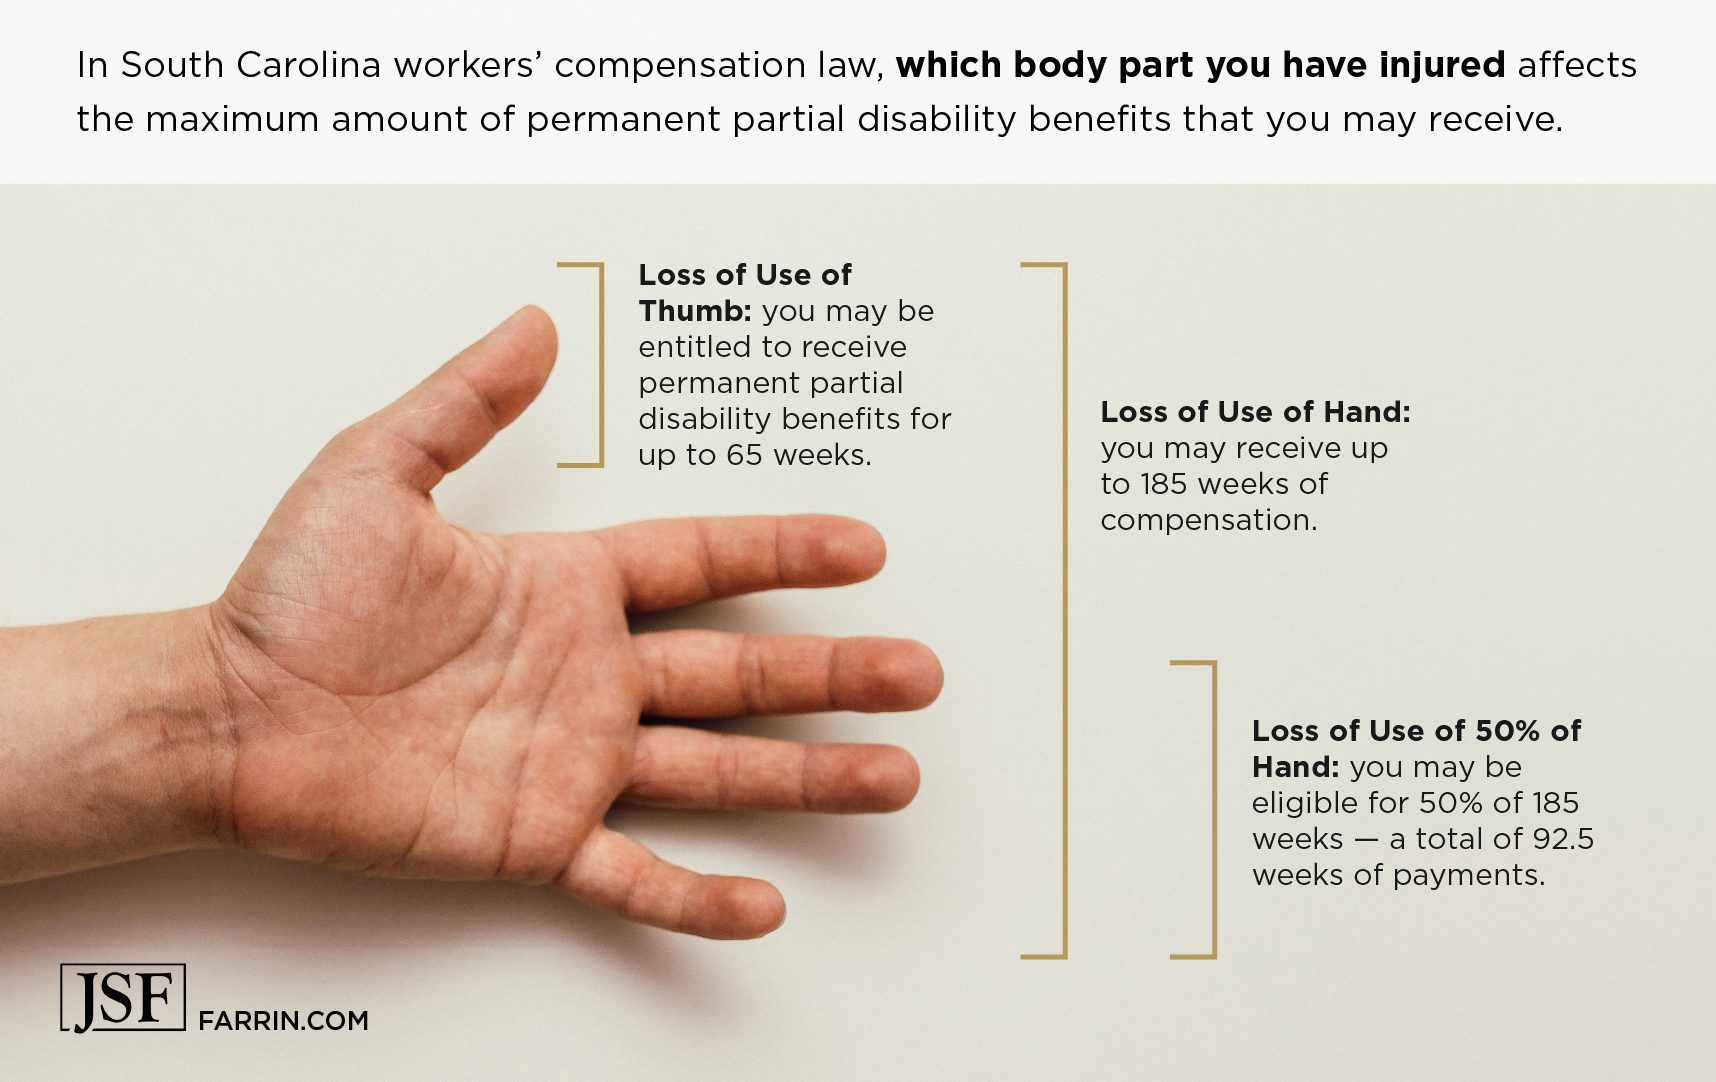 Injuries to different parts of the hand may result in different amounts of compensation.